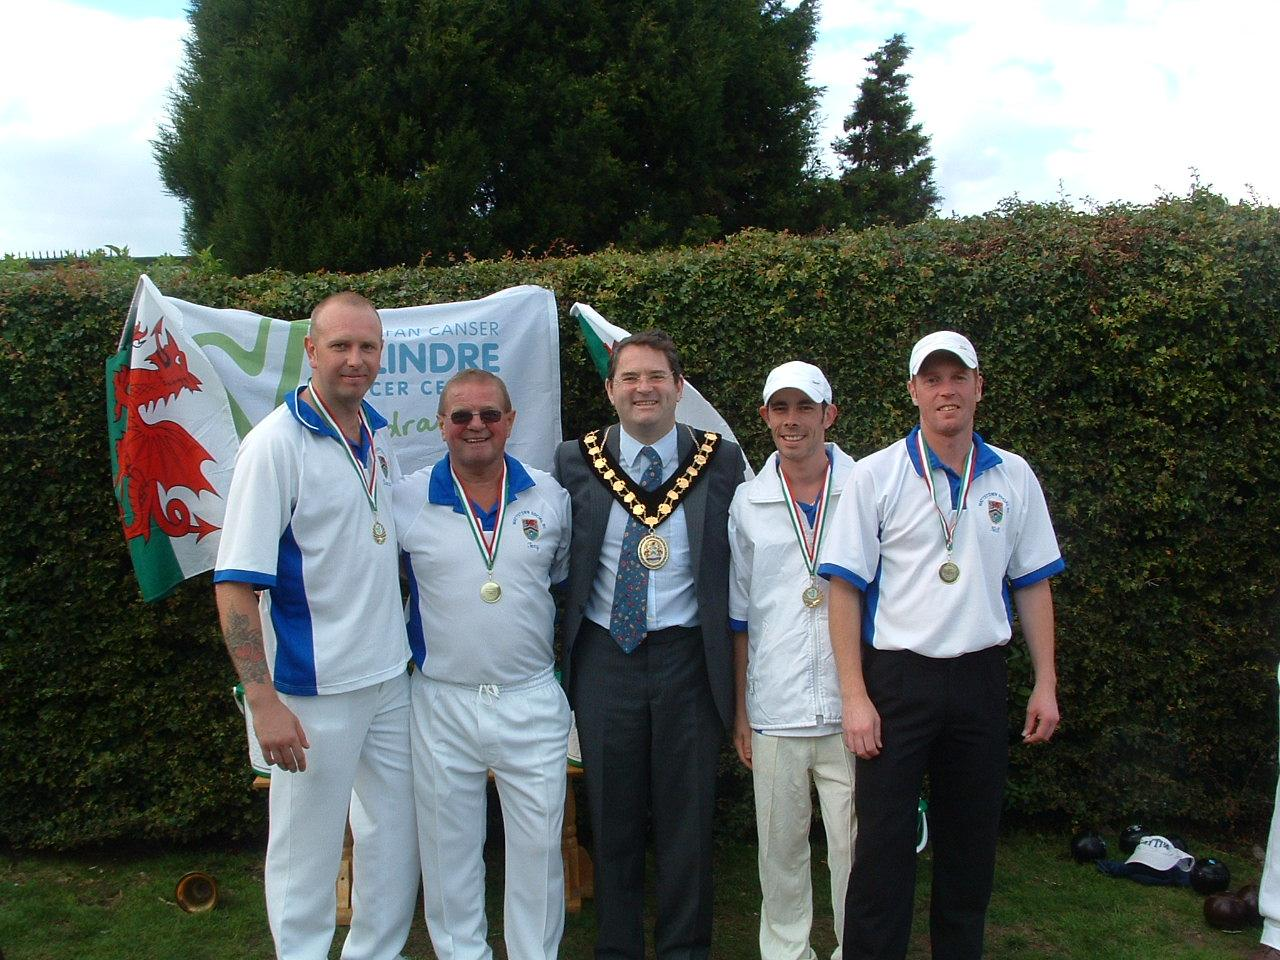 2010 Velindre Charity Day Runners Up